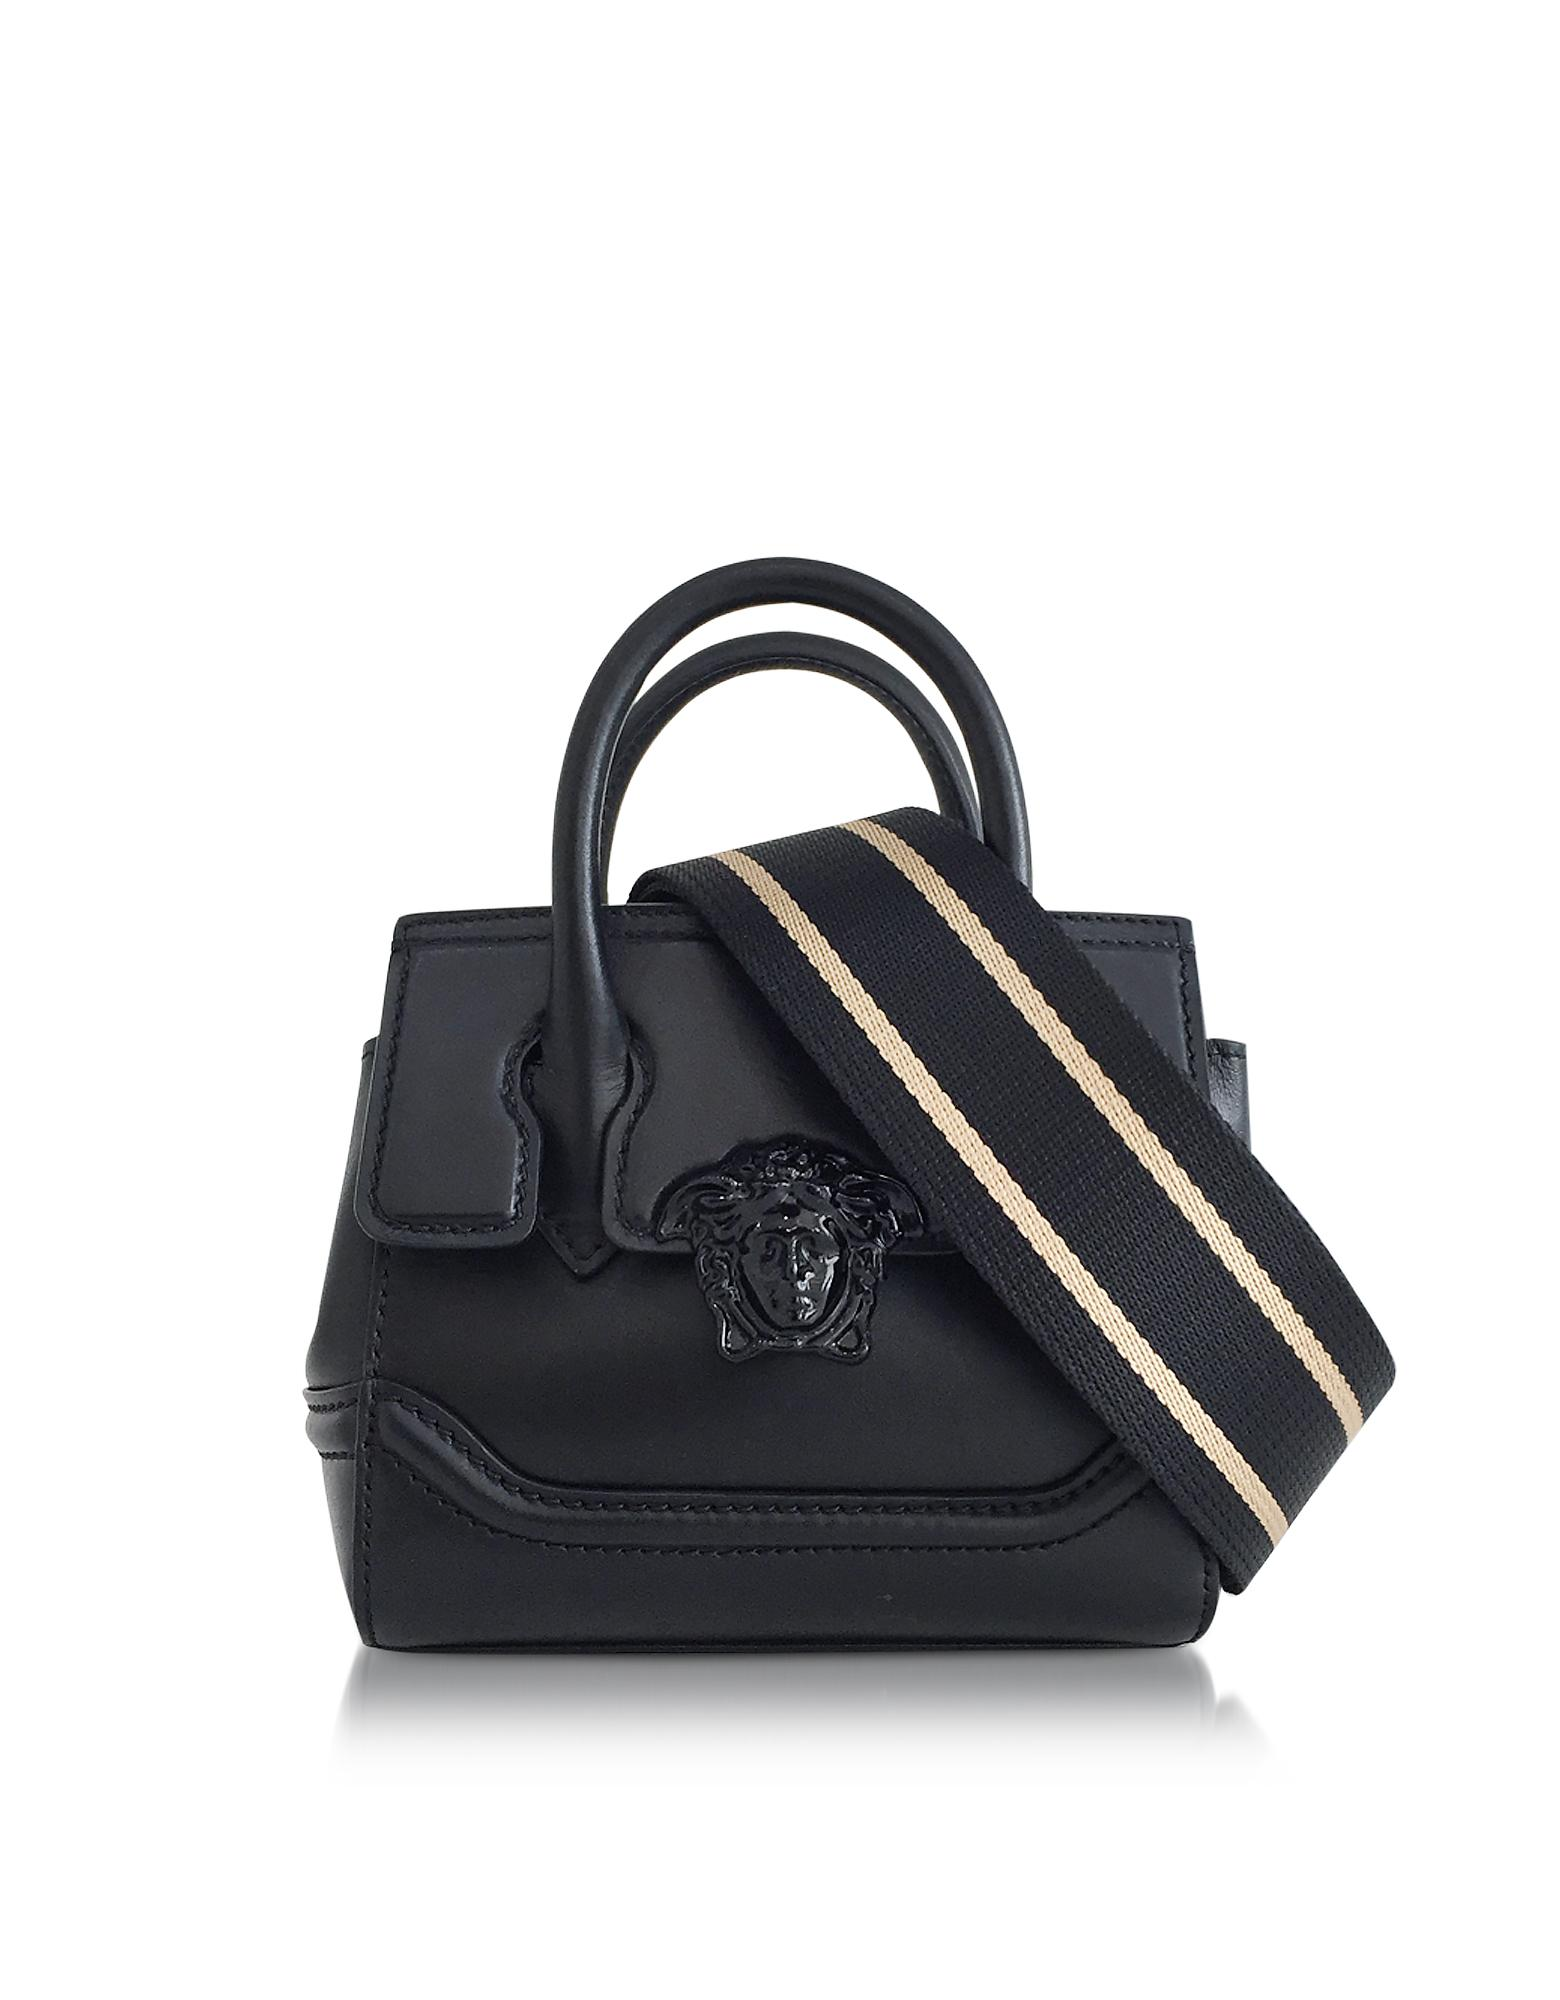 b67a944047b0 Lyst - Versace Palazzo Empire Black Leather Mini Handbag in Black